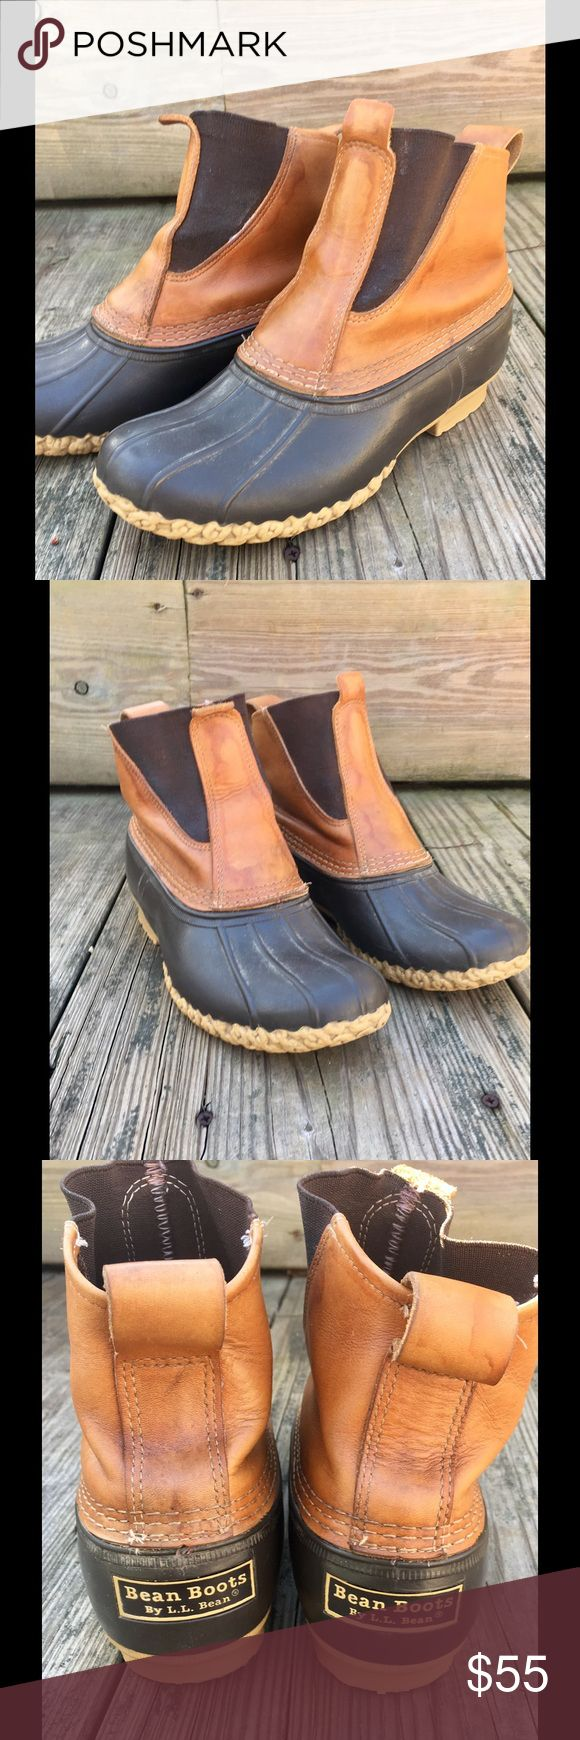 "Women's LLBean elastic duck boots size 9 medium LL Bean Tan Leather Pull Up Lounger Duck Boot.  Women's size 9 Medium.  7 "" tall.  Also fit Men's size 7. Boot has no laces, just pulls up. Easy on and easy off. Elastic panels on side allow you to slide foot in quickly.  It is in great condition.  The sole is great shape and the leather has some spotting due to water.  The tanned leather is supple and the rubber bottom is sound and waterproof.  Boot, heel to toe, approx11.0 "" width,approx…"